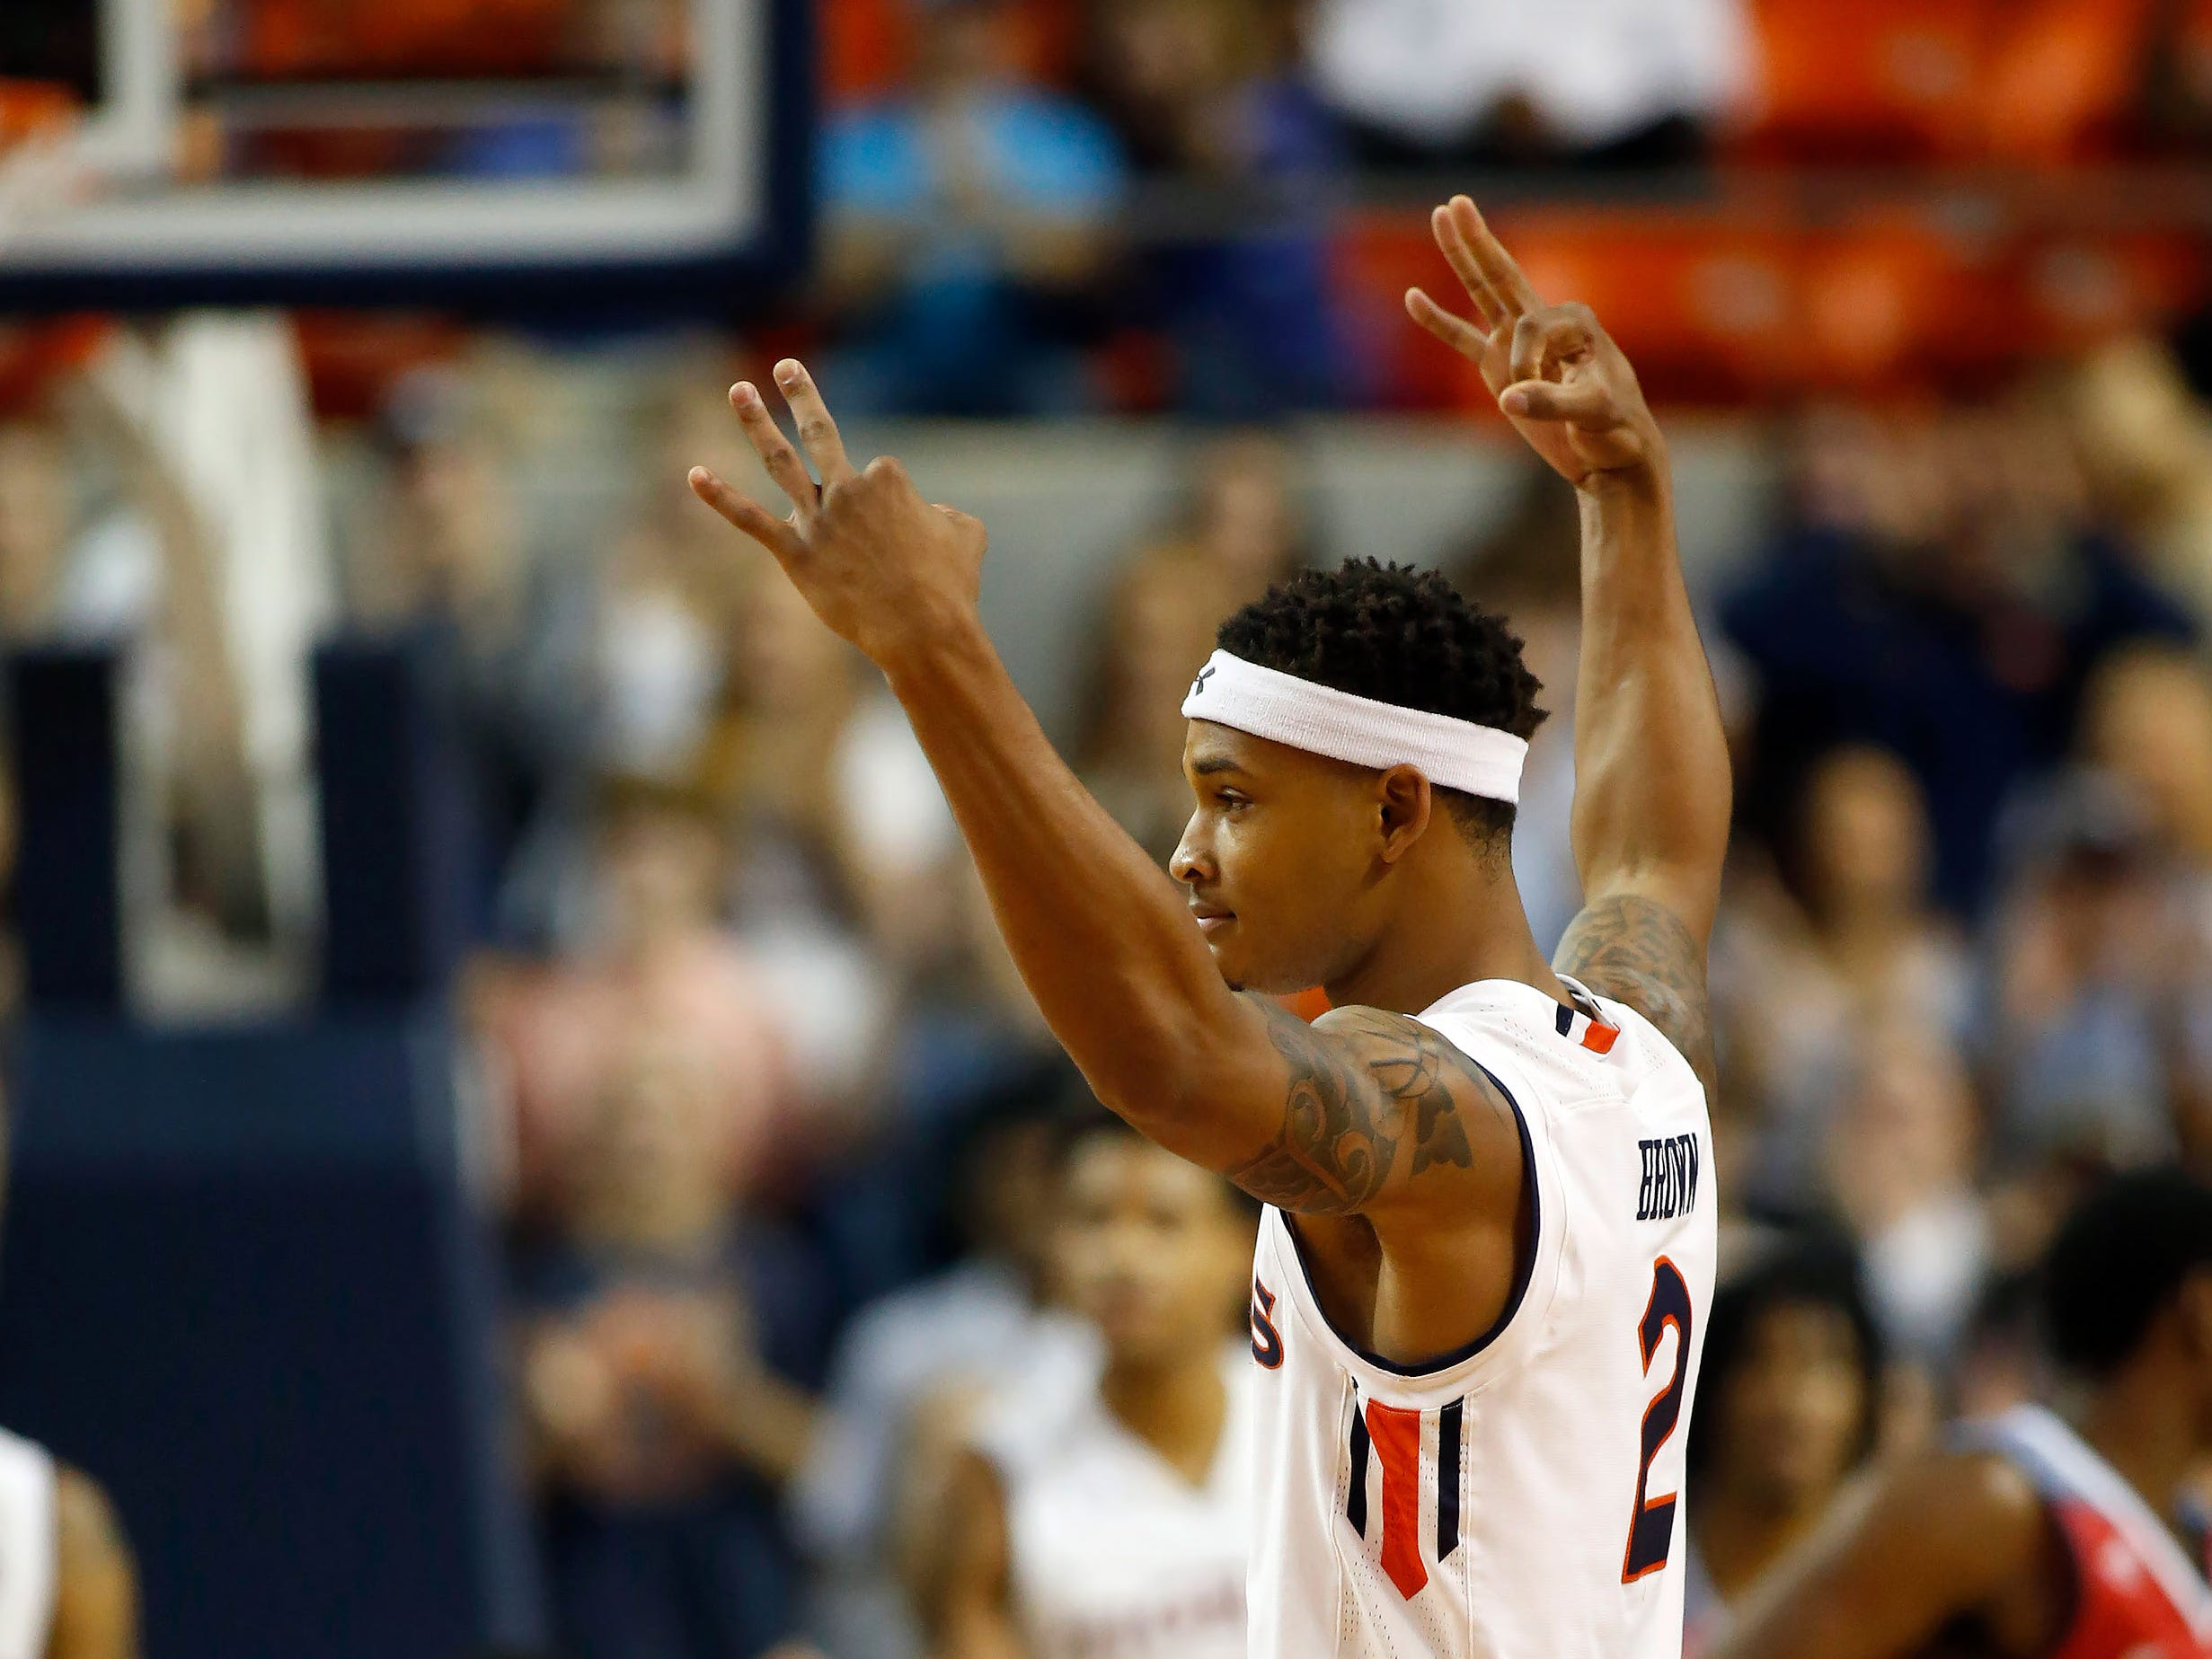 Auburn guard Bryce Brown (2) reacts after scoring against South Alabama on Nov. 6, 2018, in Auburn, Ala.